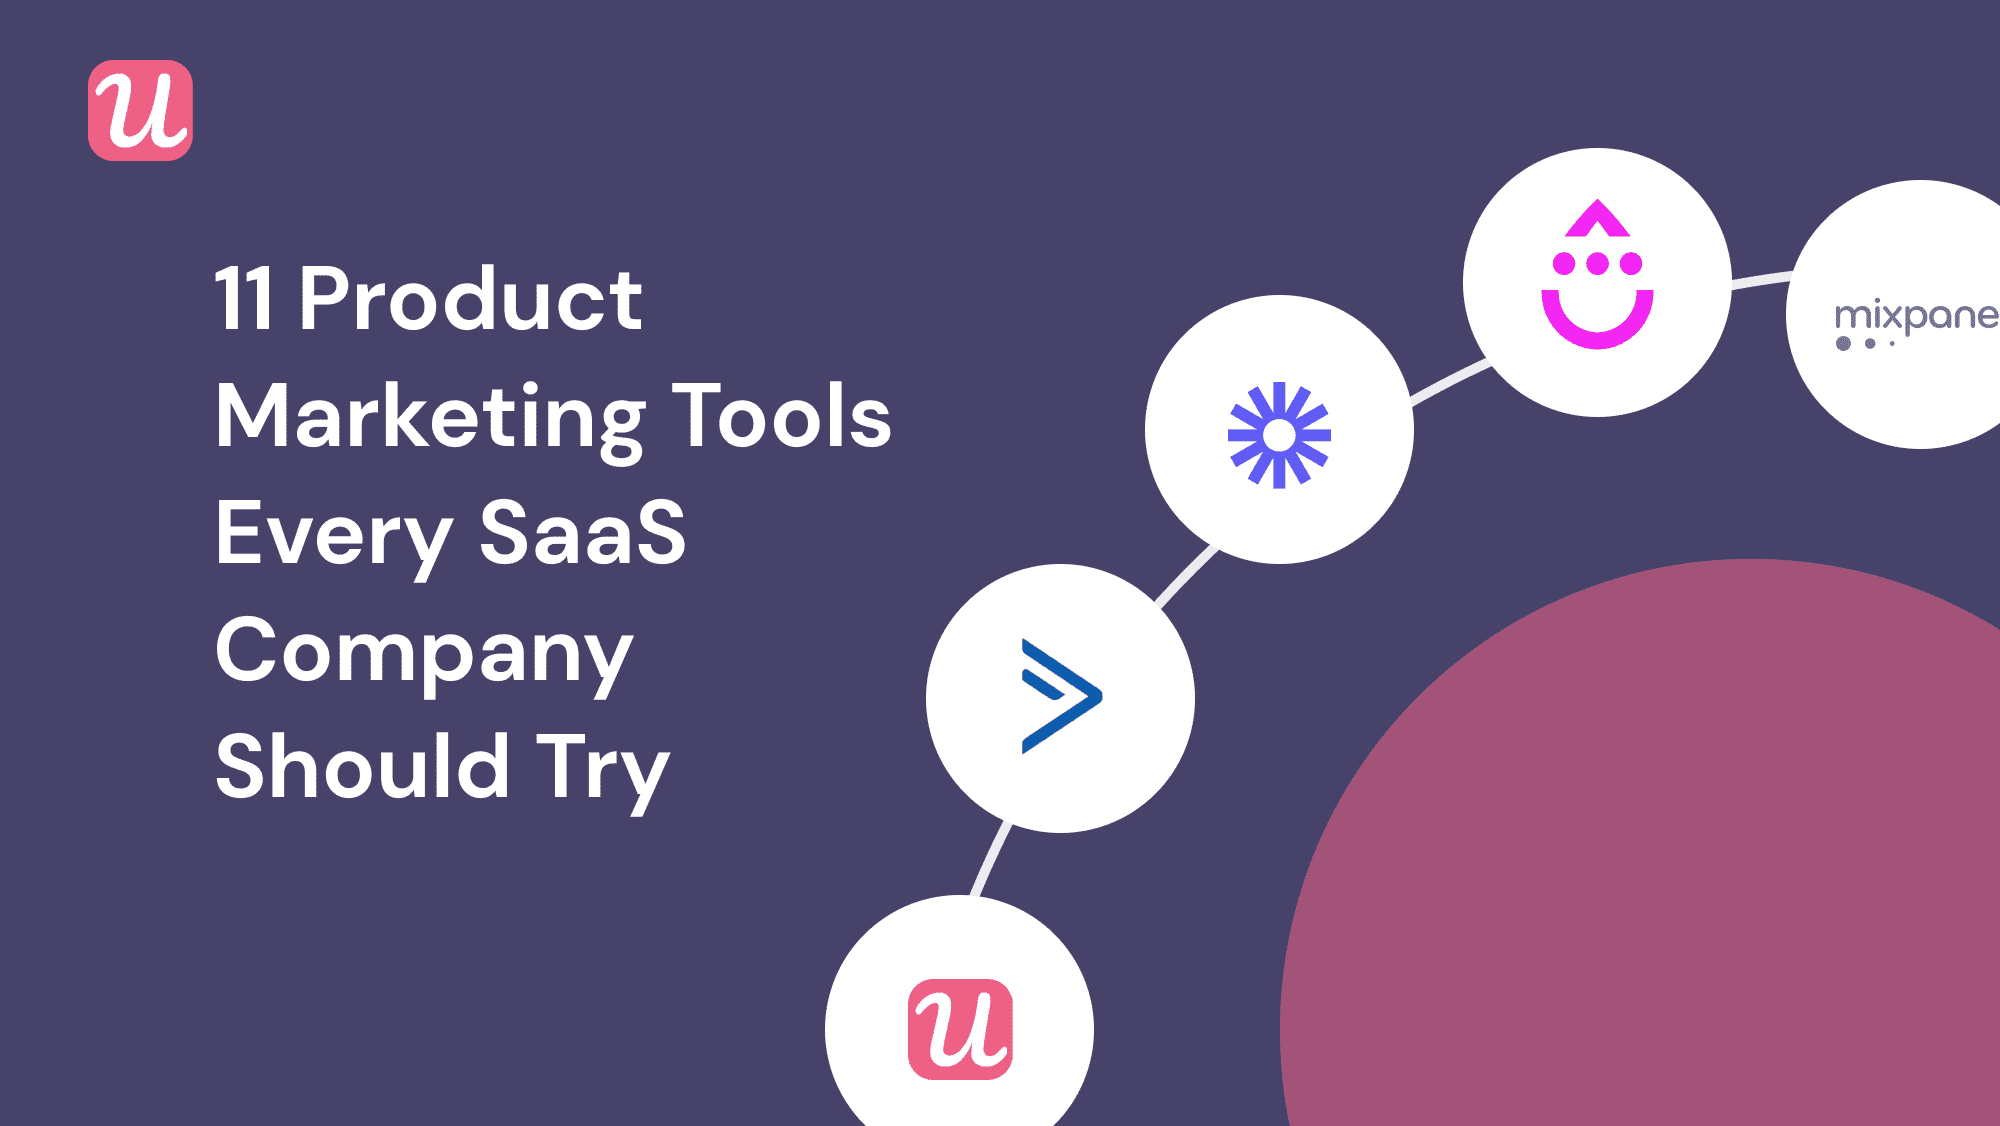 11 Product Marketing Tools Every SaaS Company Should Try